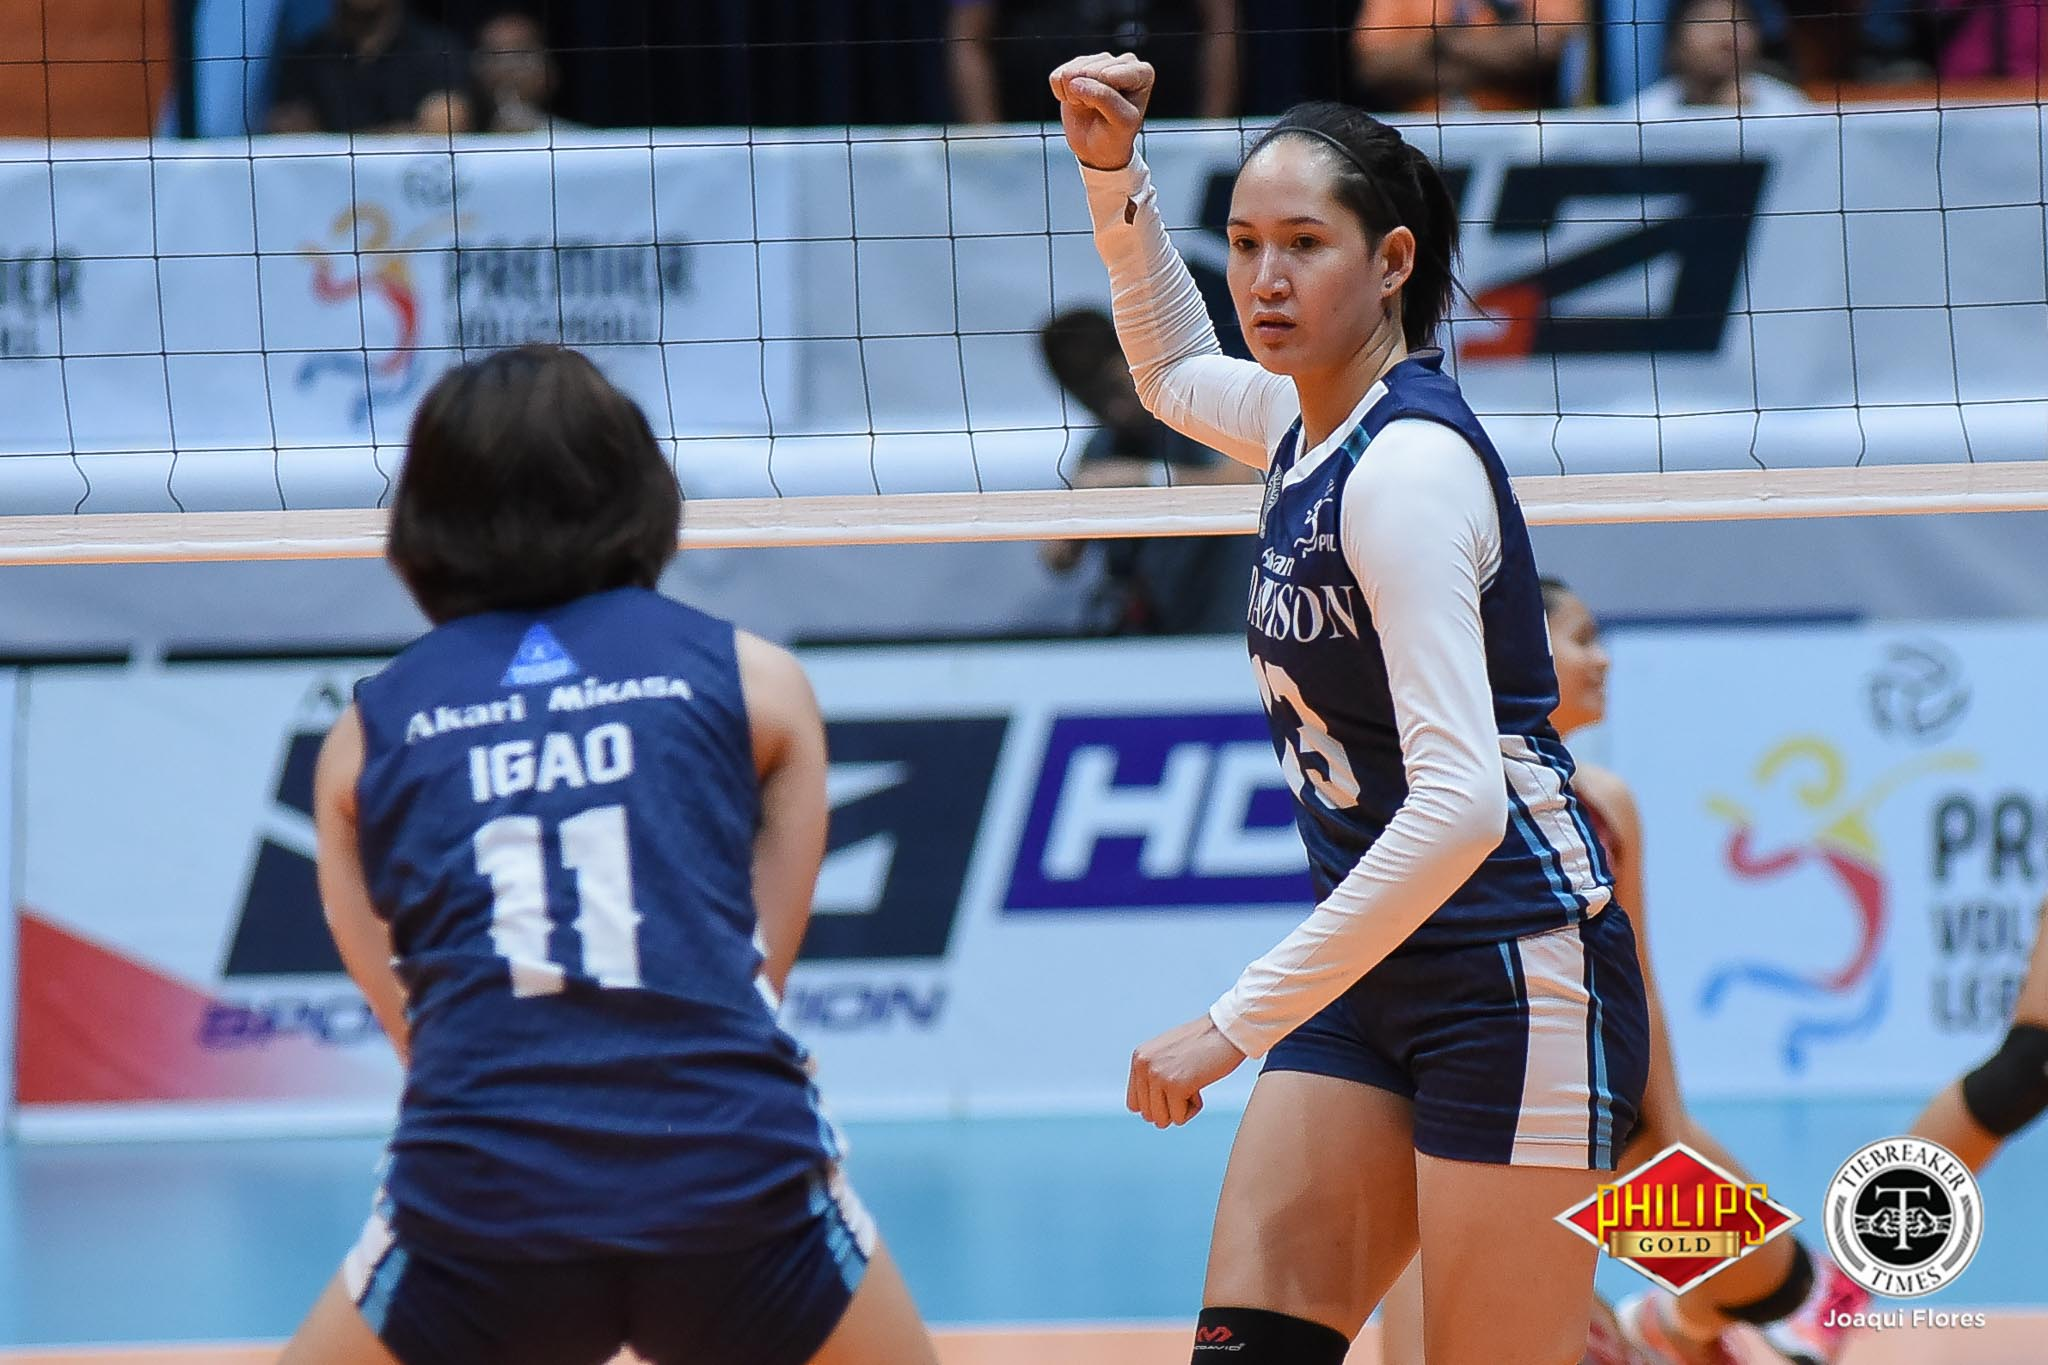 PVL-College-ADU-vs.-UP-Soyud-5630 Hungry Lady Falcons looking to prove worth to community by reaching Finals AdU News PVL Volleyball  - philippine sports news